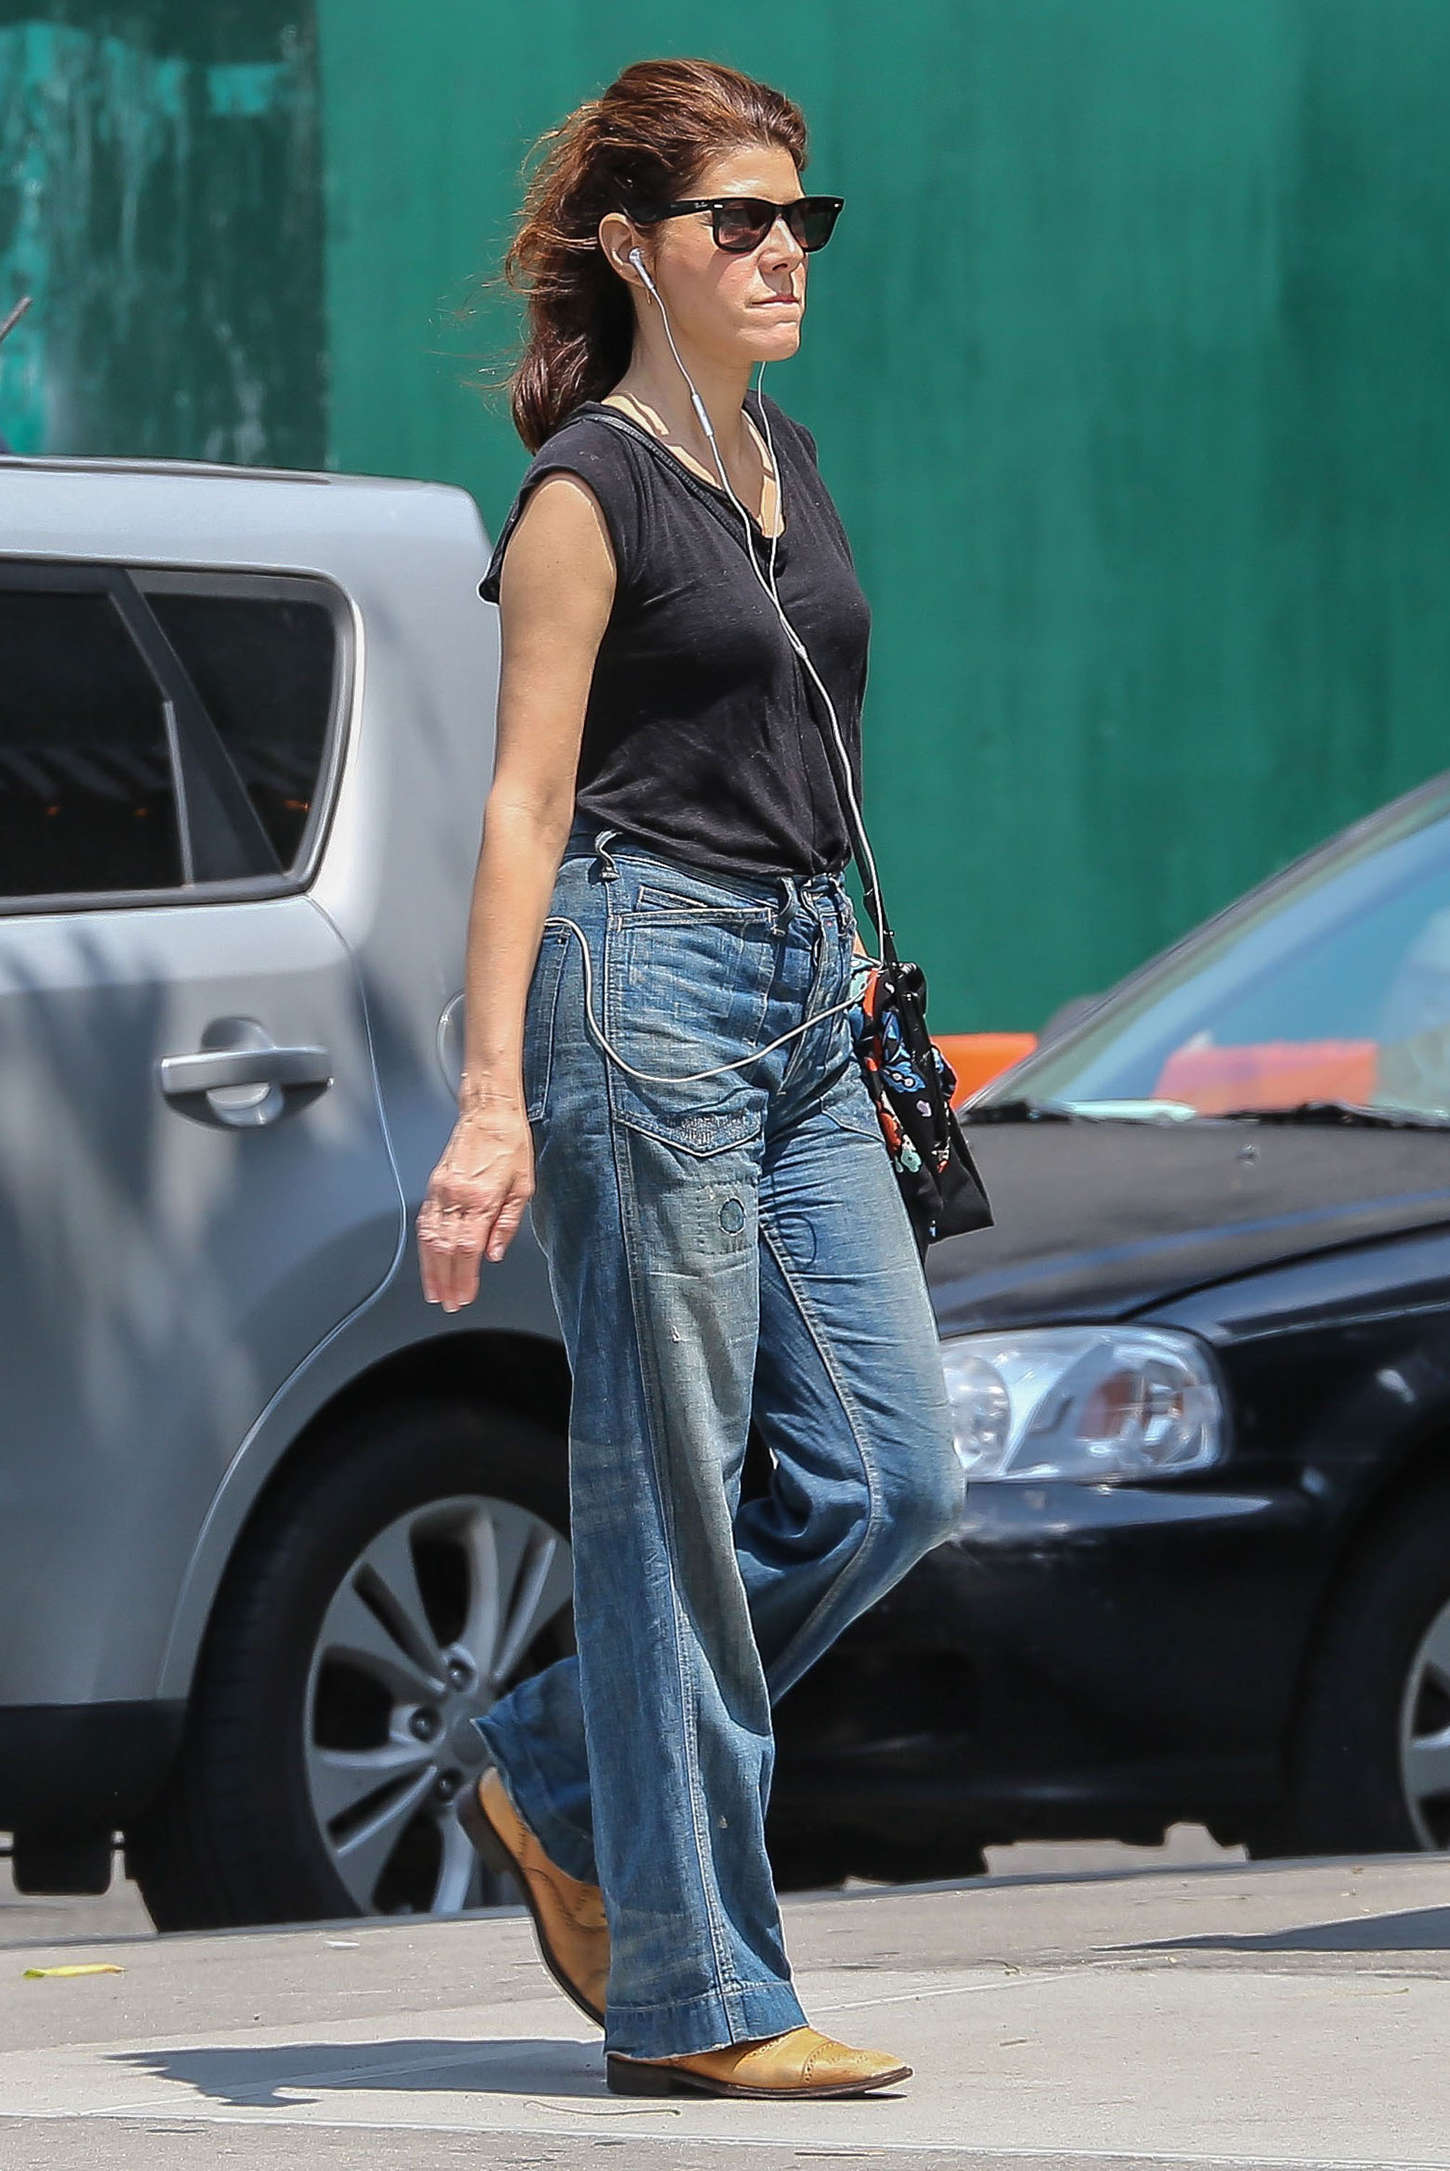 Marisa Tomei In Jeans Out And About In Nyc Gotceleb